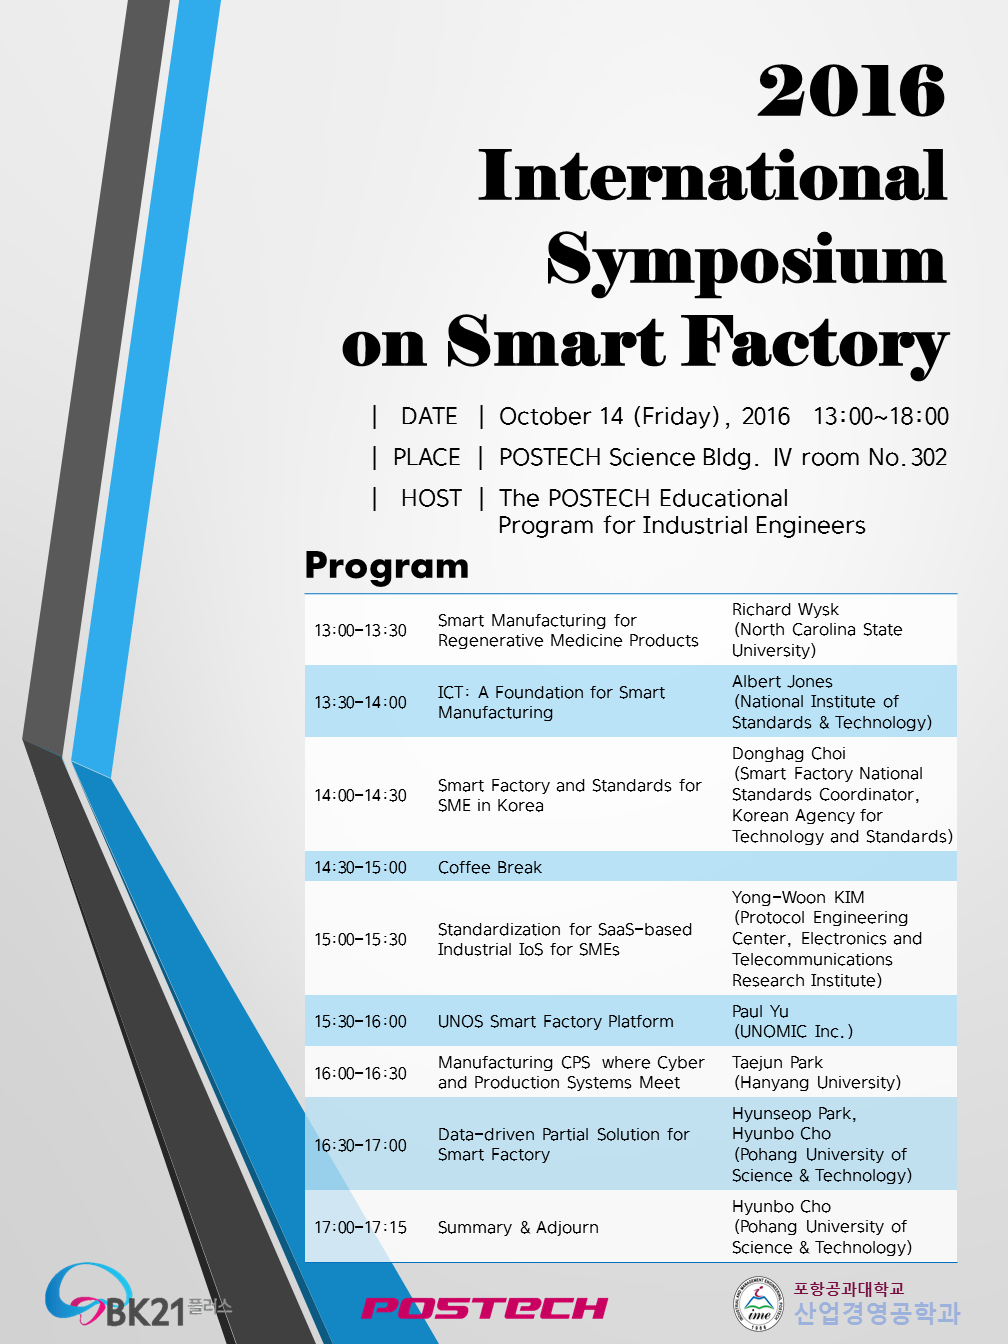 2380217416_xyQwAtql_2016_International_Symposium_on_Smart_Factory